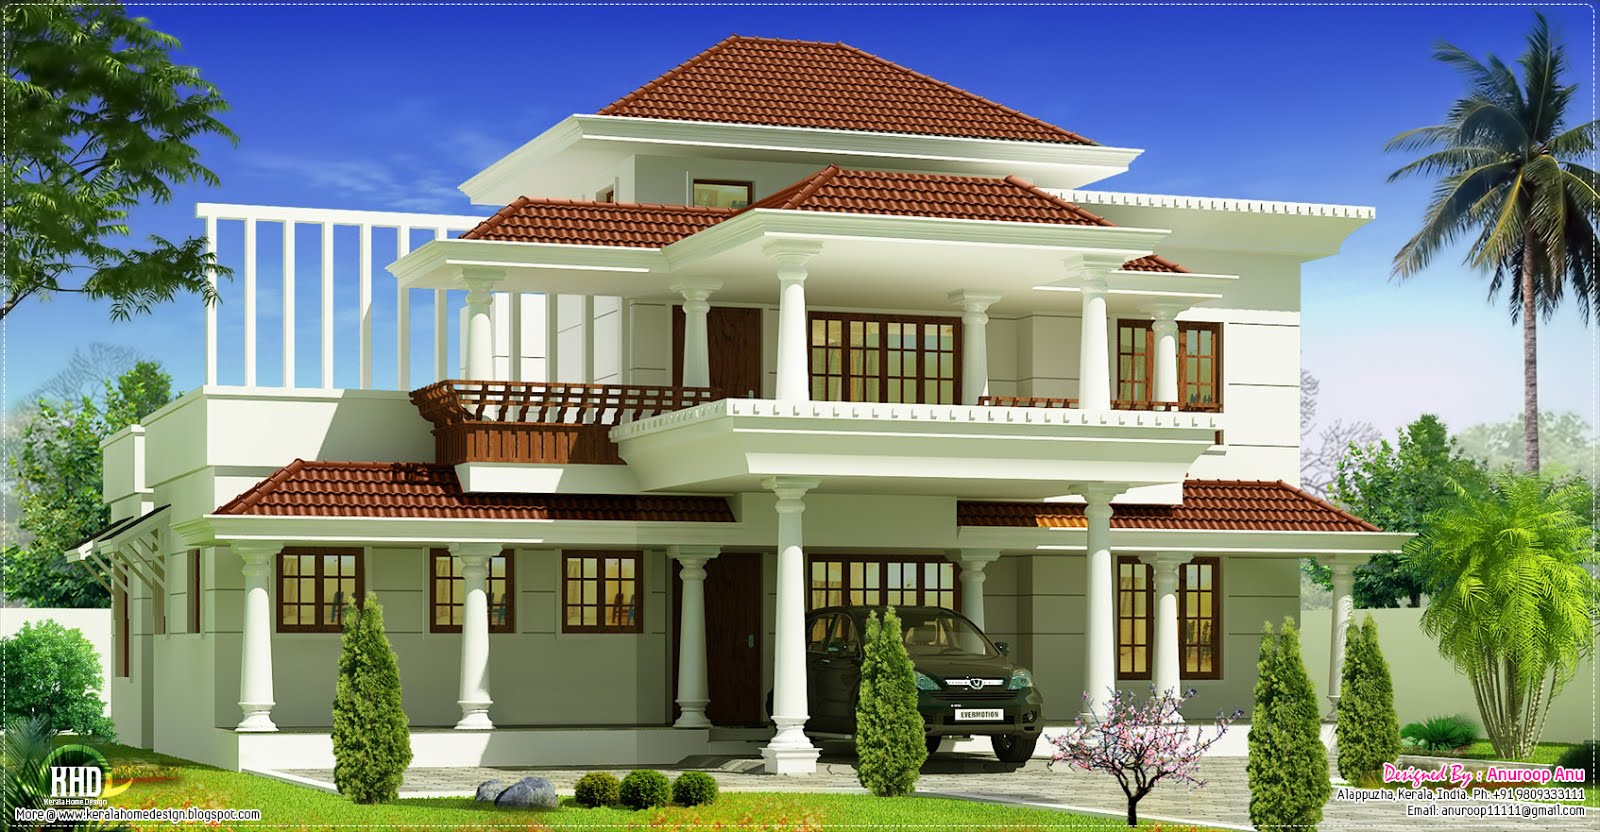 Kerala house models houses plans designs for Kerala house construction plans